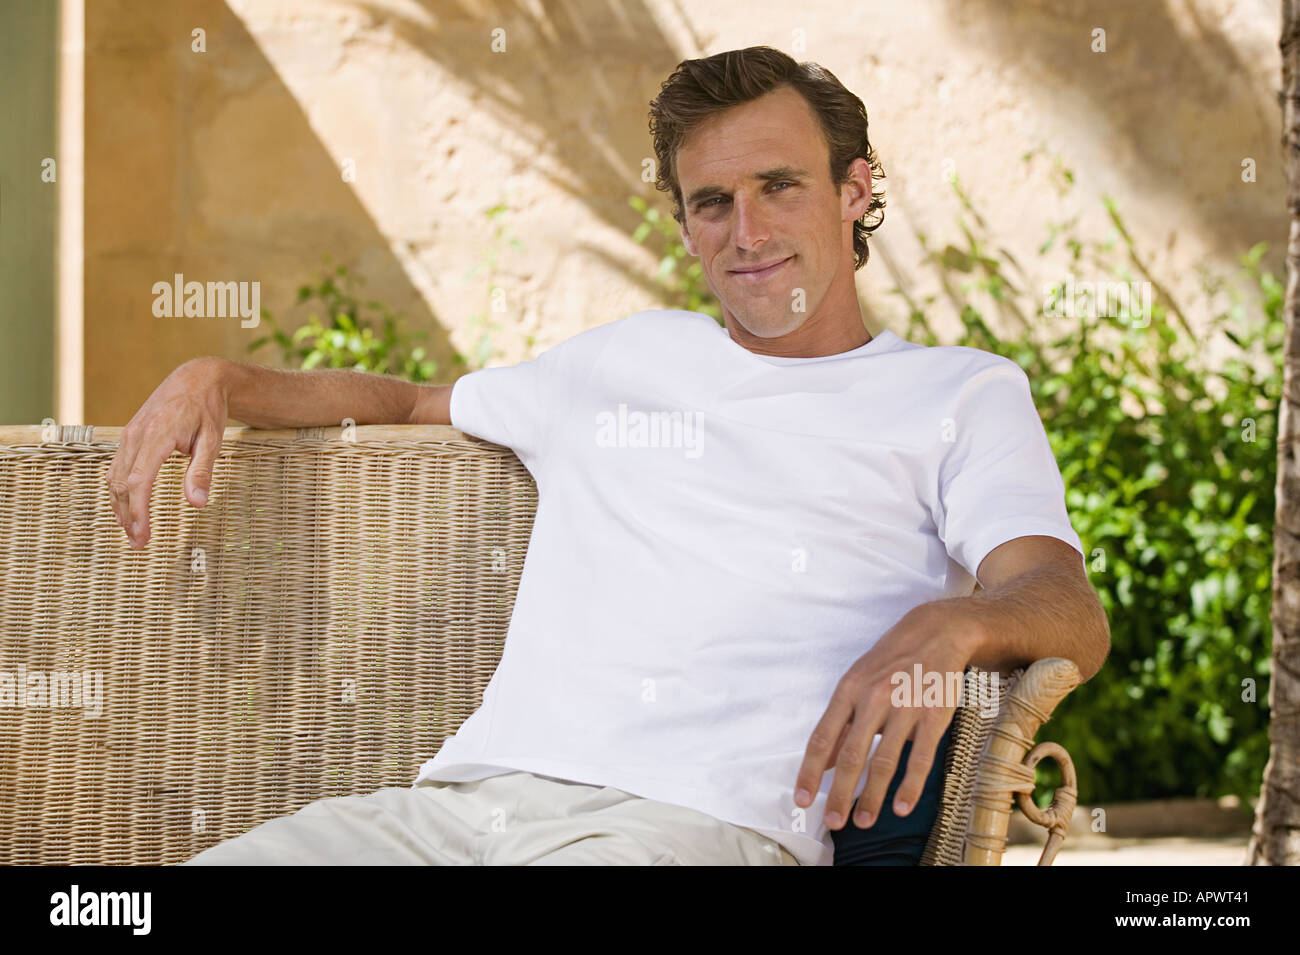 Man in a wicker chair - Stock Image